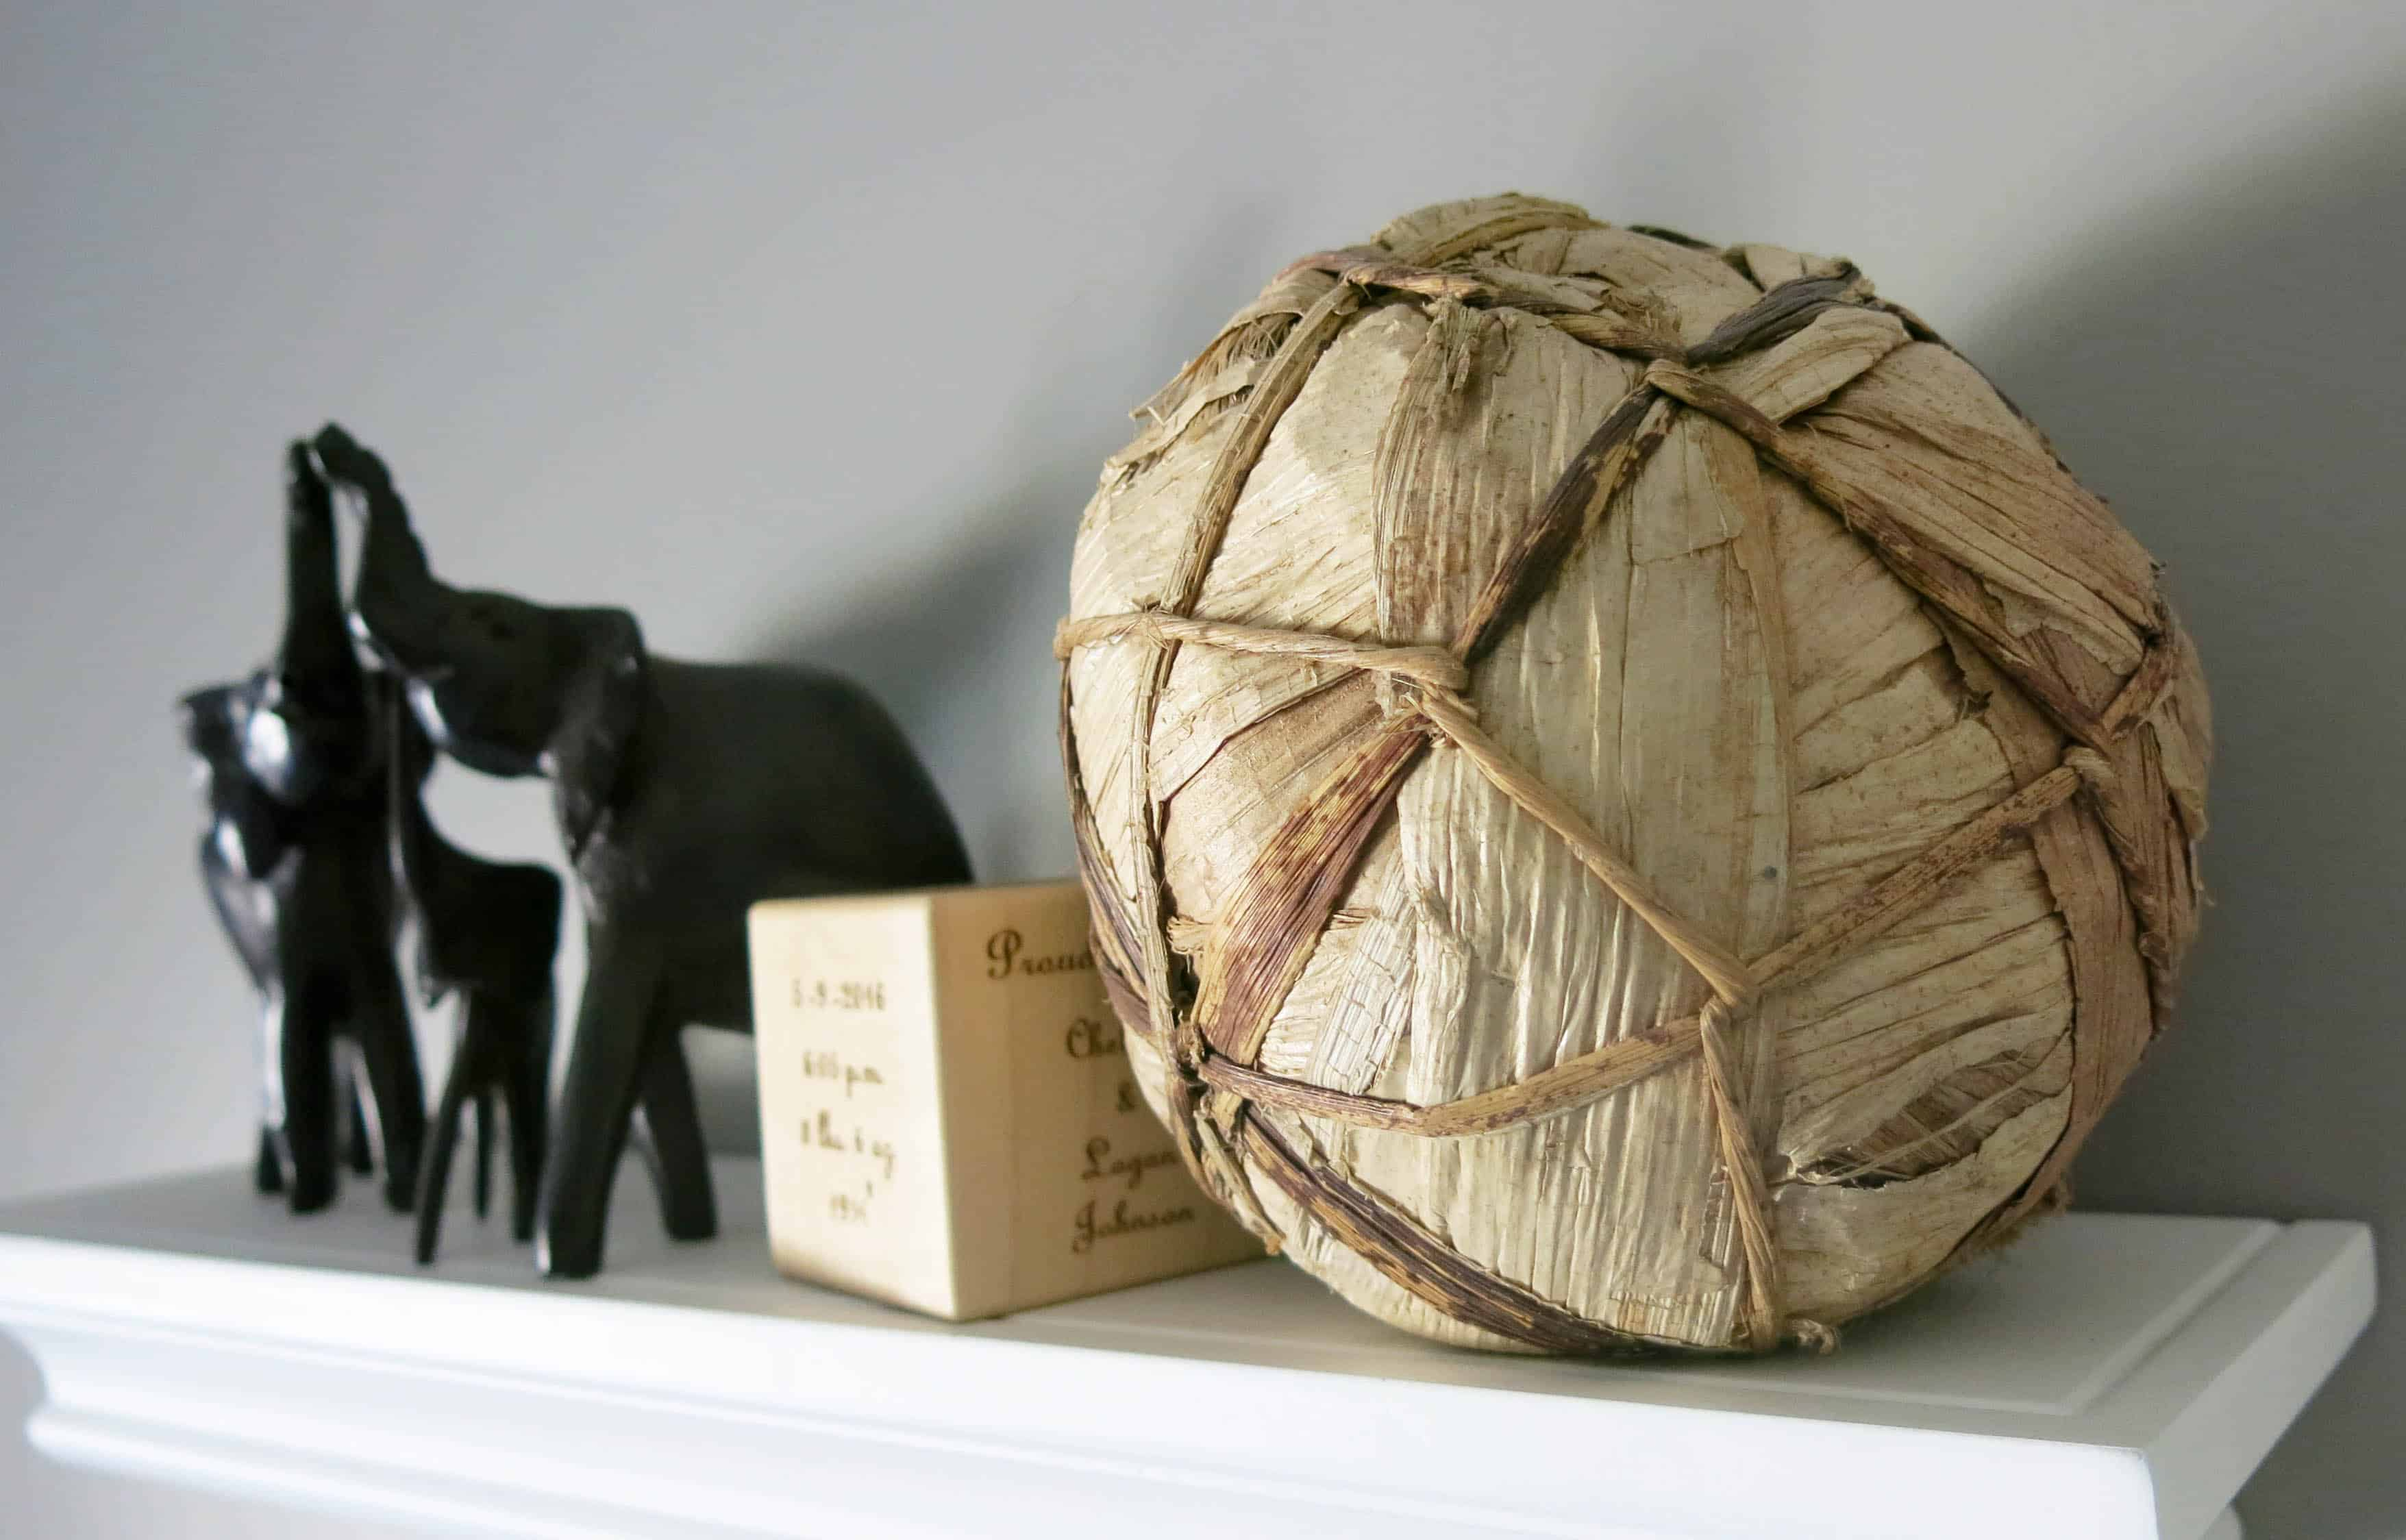 black elephant trinkets, a wooden box, and a rope and corn husk decorative ball on a white shelf